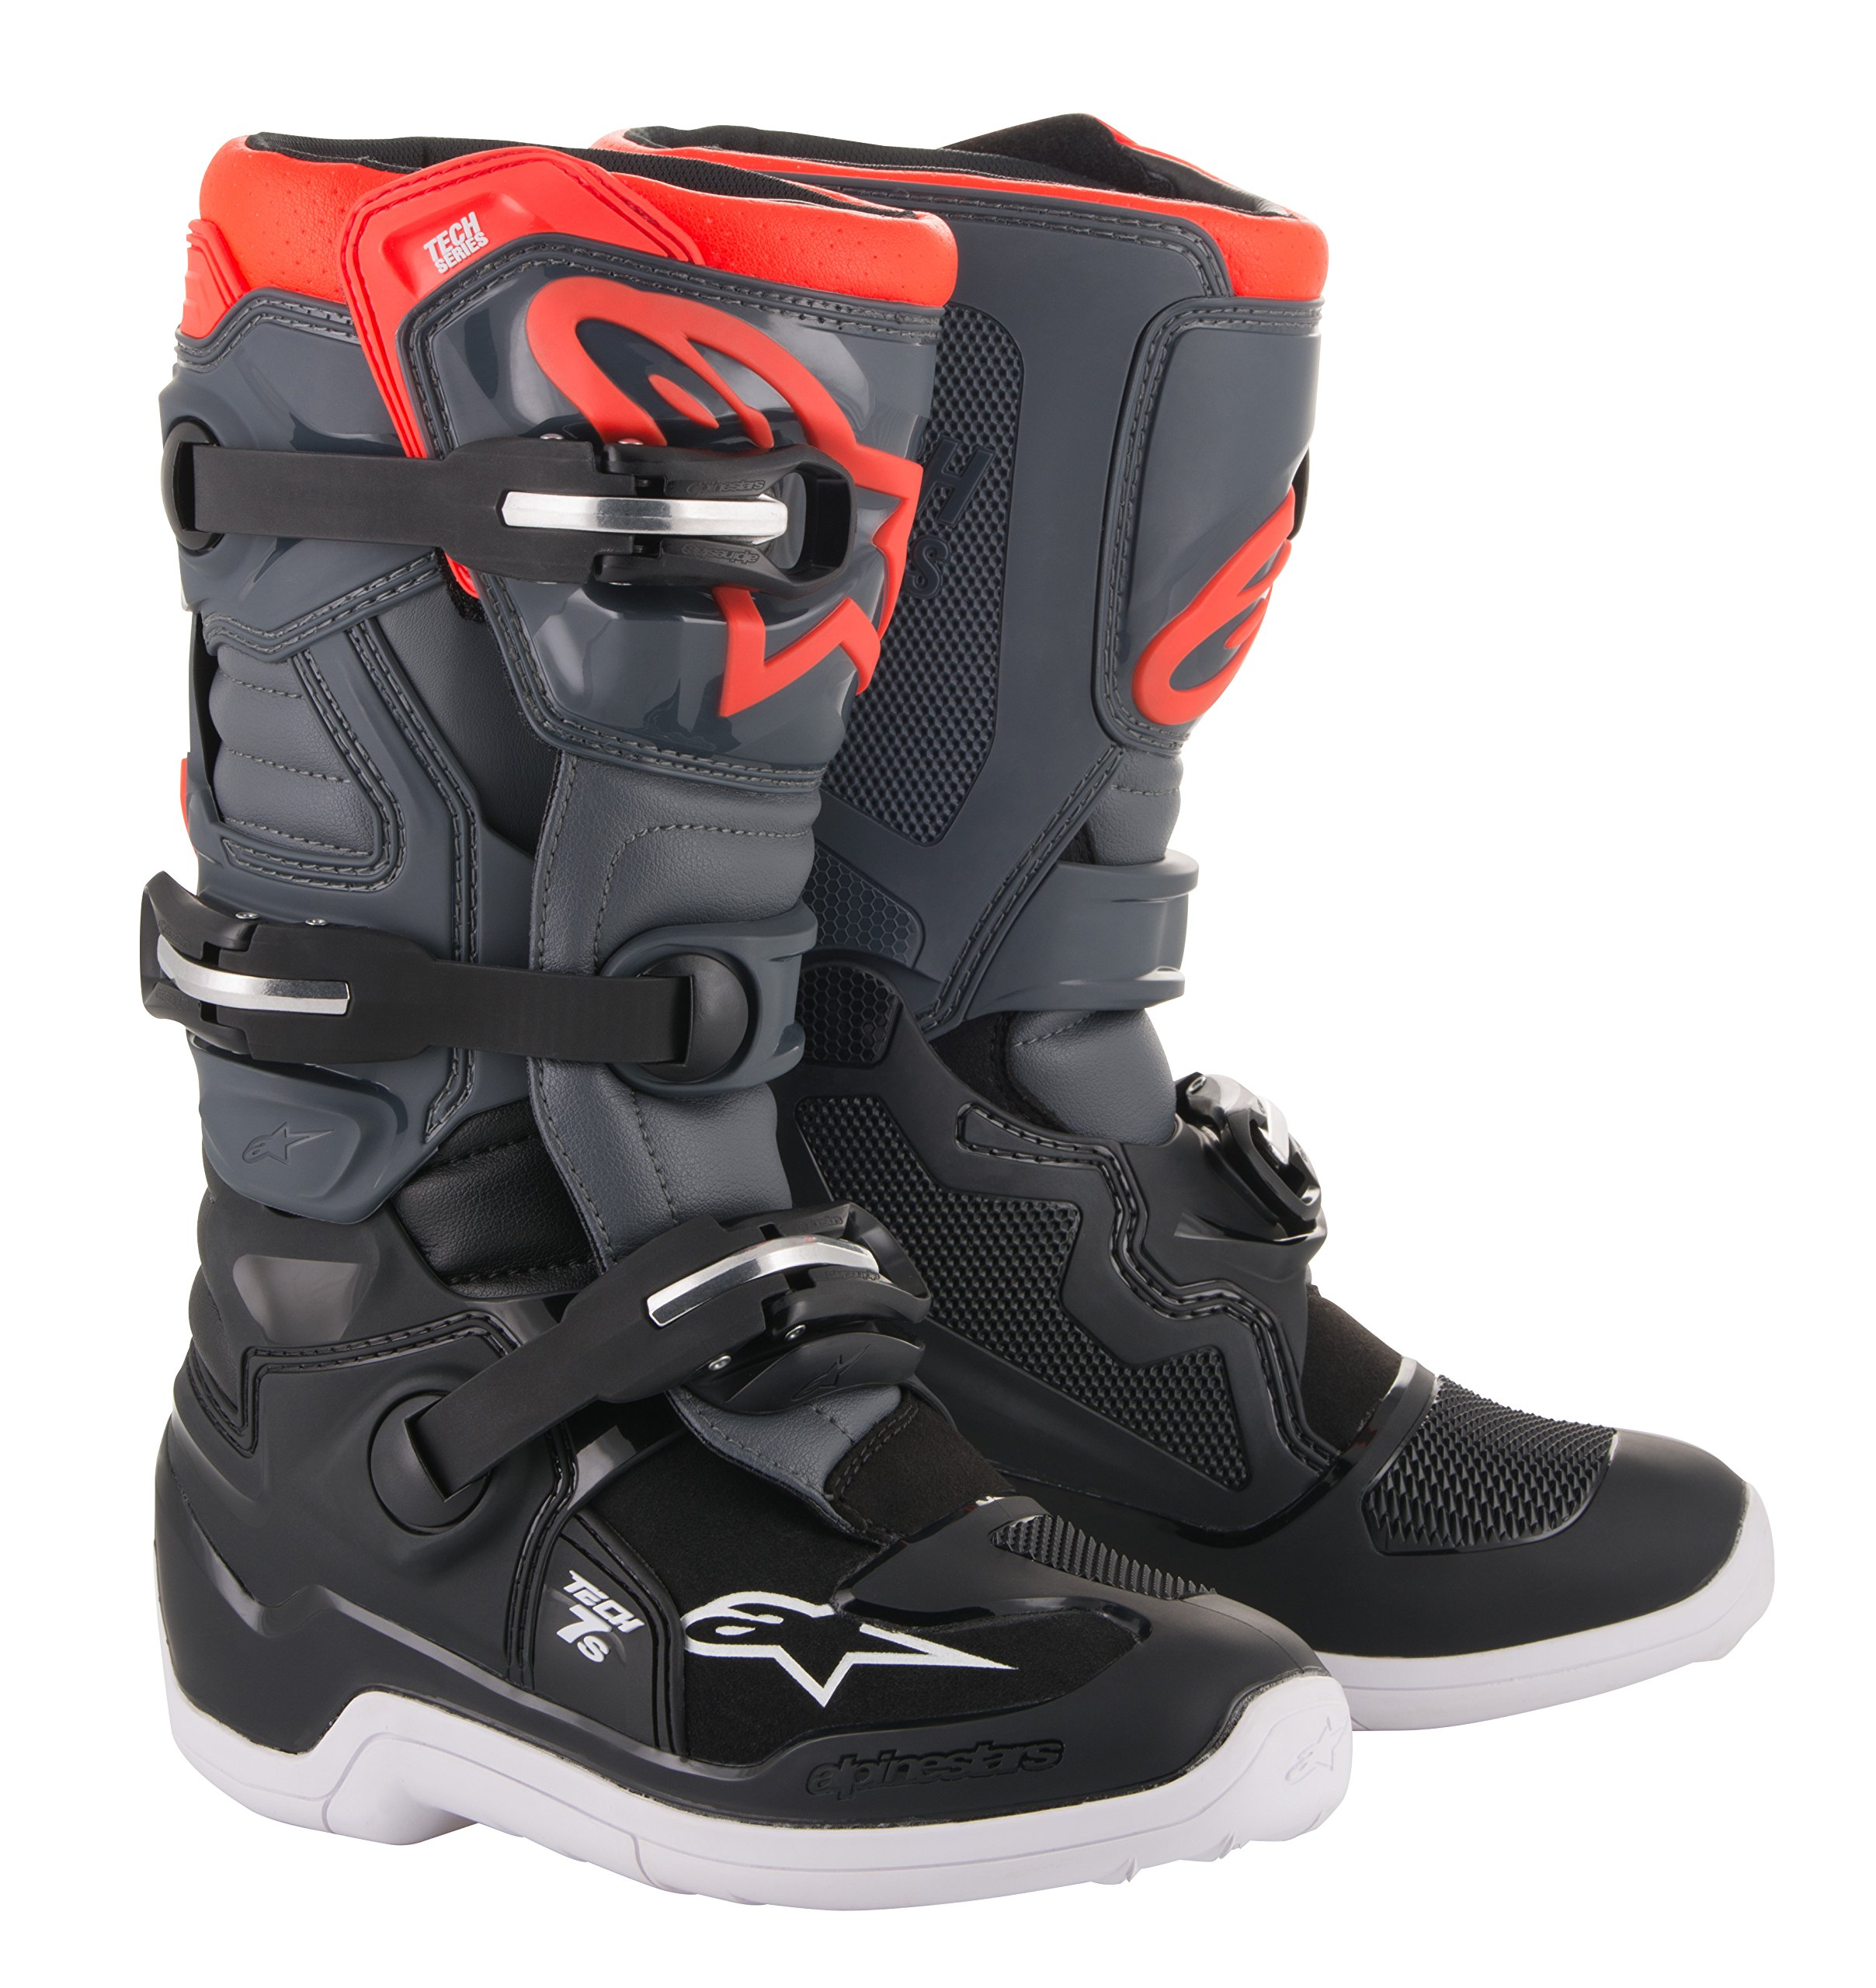 Tech 7S Youth Off-Road Motocross Boot (5 US, Black Dark Gray Red Fluo)